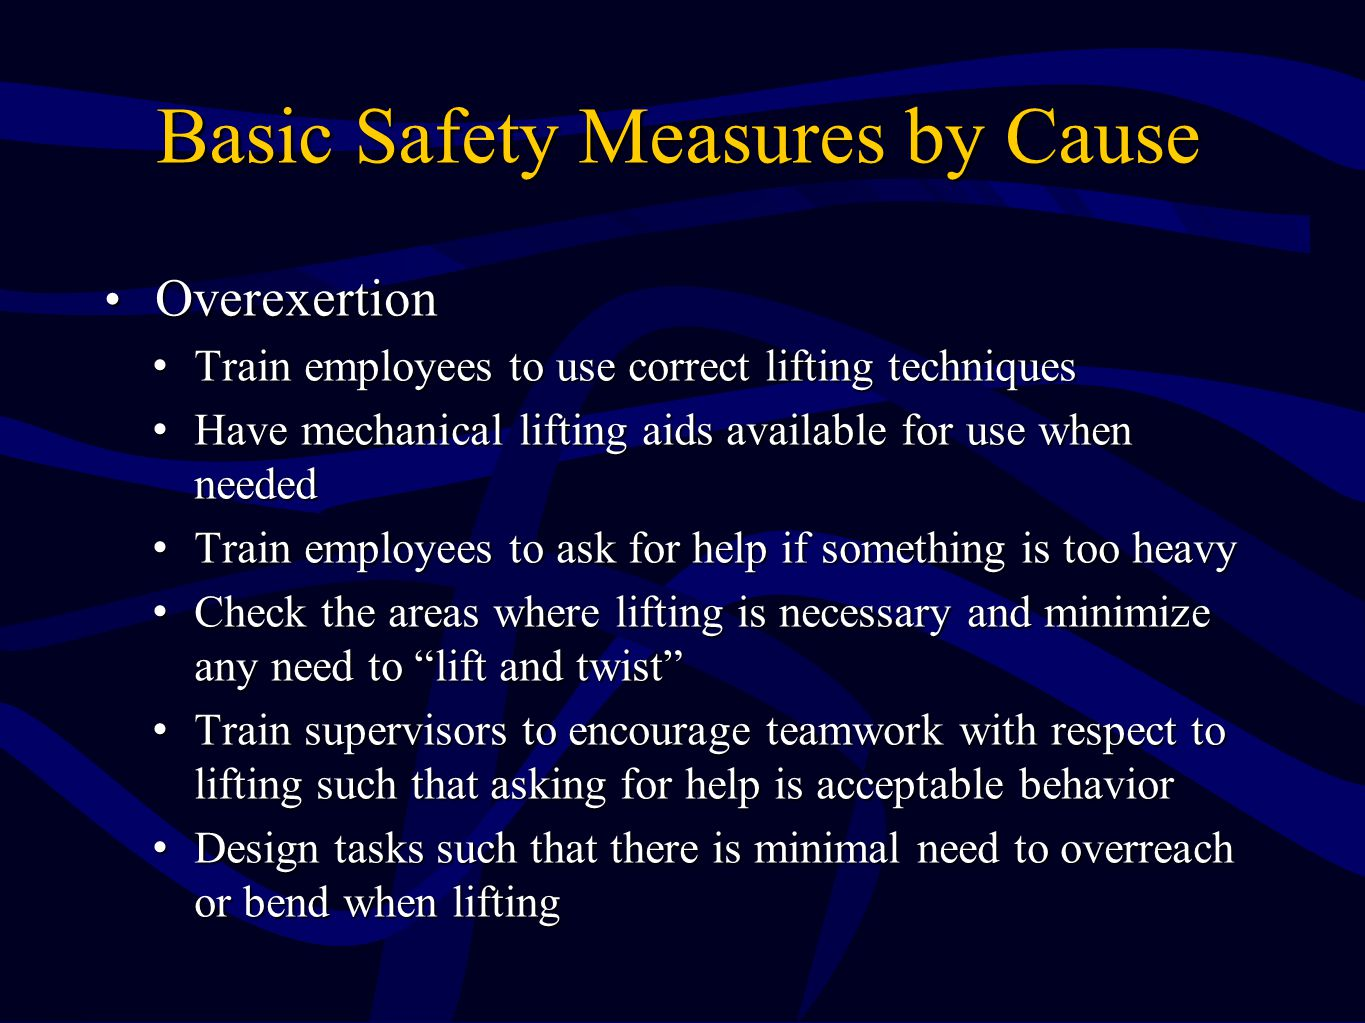 Basic Safety Measures by Cause Overexertion Overexertion Train employees to use correct lifting techniquesTrain employees to use correct lifting techniques Have mechanical lifting aids available for use when neededHave mechanical lifting aids available for use when needed Train employees to ask for help if something is too heavyTrain employees to ask for help if something is too heavy Check the areas where lifting is necessary and minimize any need to lift and twist Check the areas where lifting is necessary and minimize any need to lift and twist Train supervisors to encourage teamwork with respect to lifting such that asking for help is acceptable behaviorTrain supervisors to encourage teamwork with respect to lifting such that asking for help is acceptable behavior Design tasks such that there is minimal need to overreach or bend when liftingDesign tasks such that there is minimal need to overreach or bend when lifting